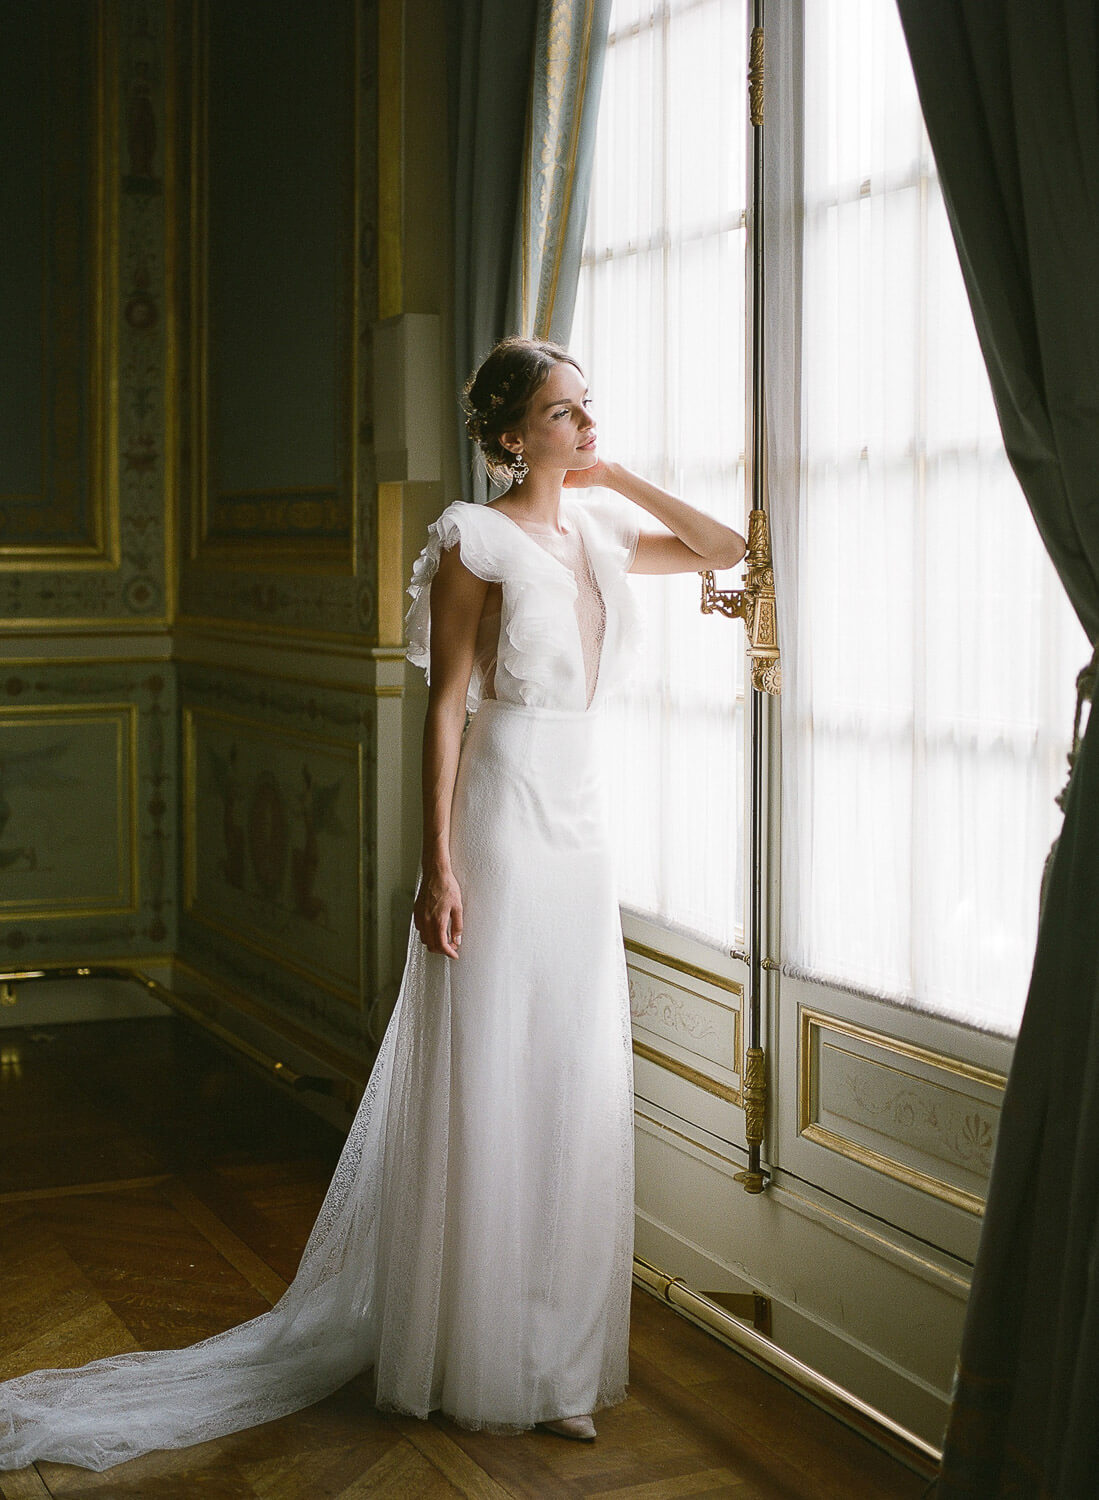 editorial bride portrait leaning over window door at Paris Palace by Portugal Wedding Photographer